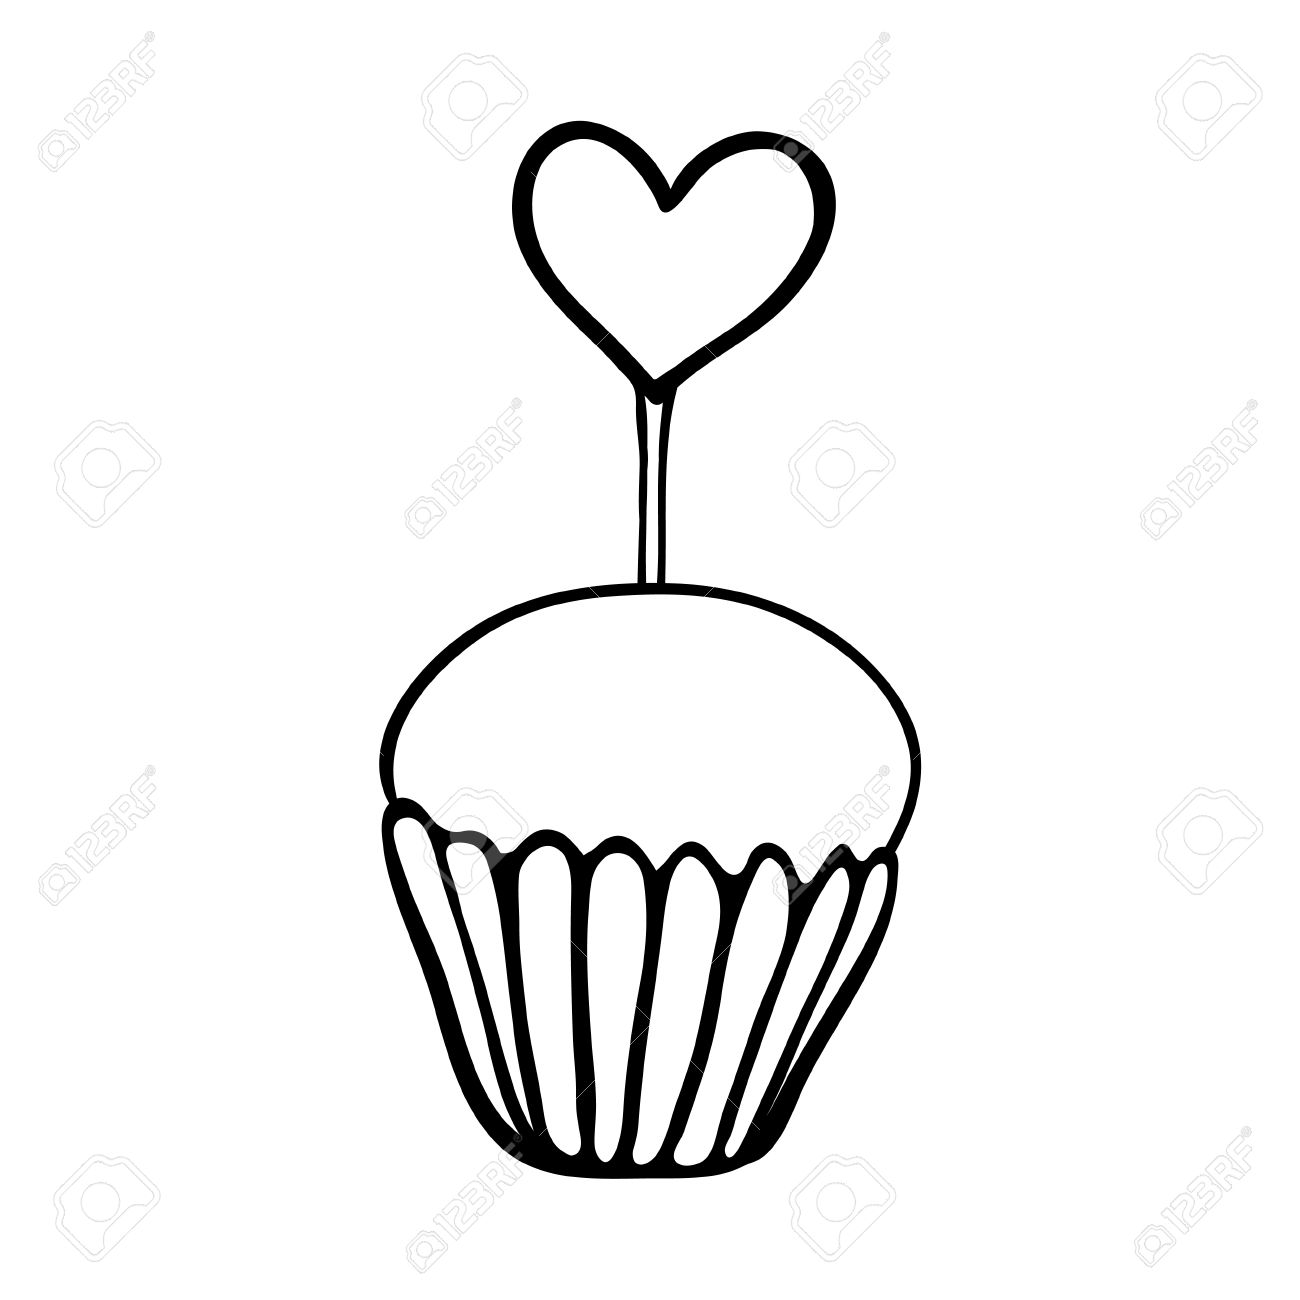 1300x1300 Valentine Cupcake Decorated With Heart Topper. Hand Drawn Sketch